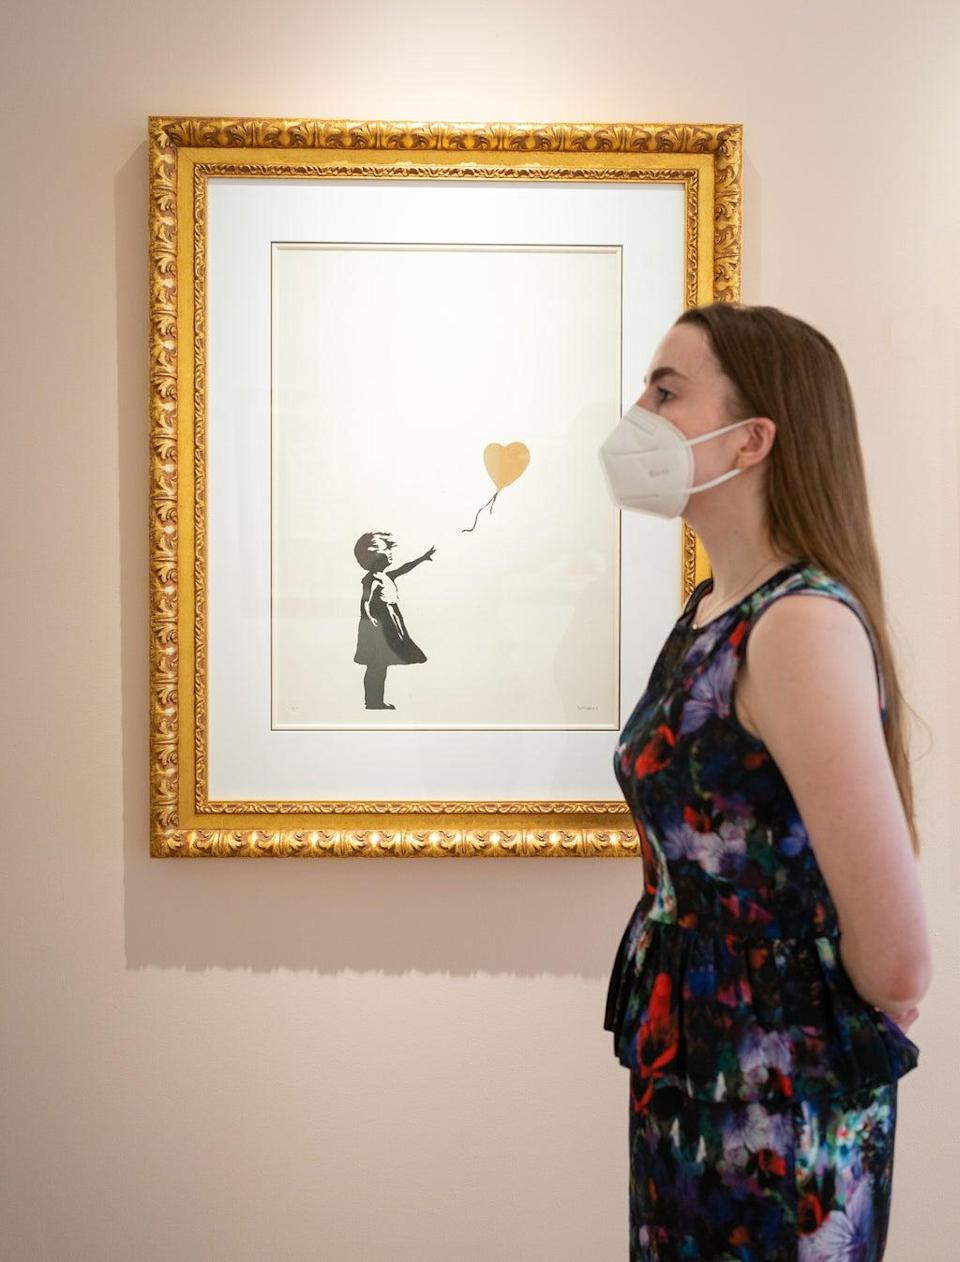 Rare works from subversive street artist Banksy – including Girl With Balloon – Colour AP (gold) – went on display ahead of an auction later this month (Dominic Lipinski/PA) (PA Wire)